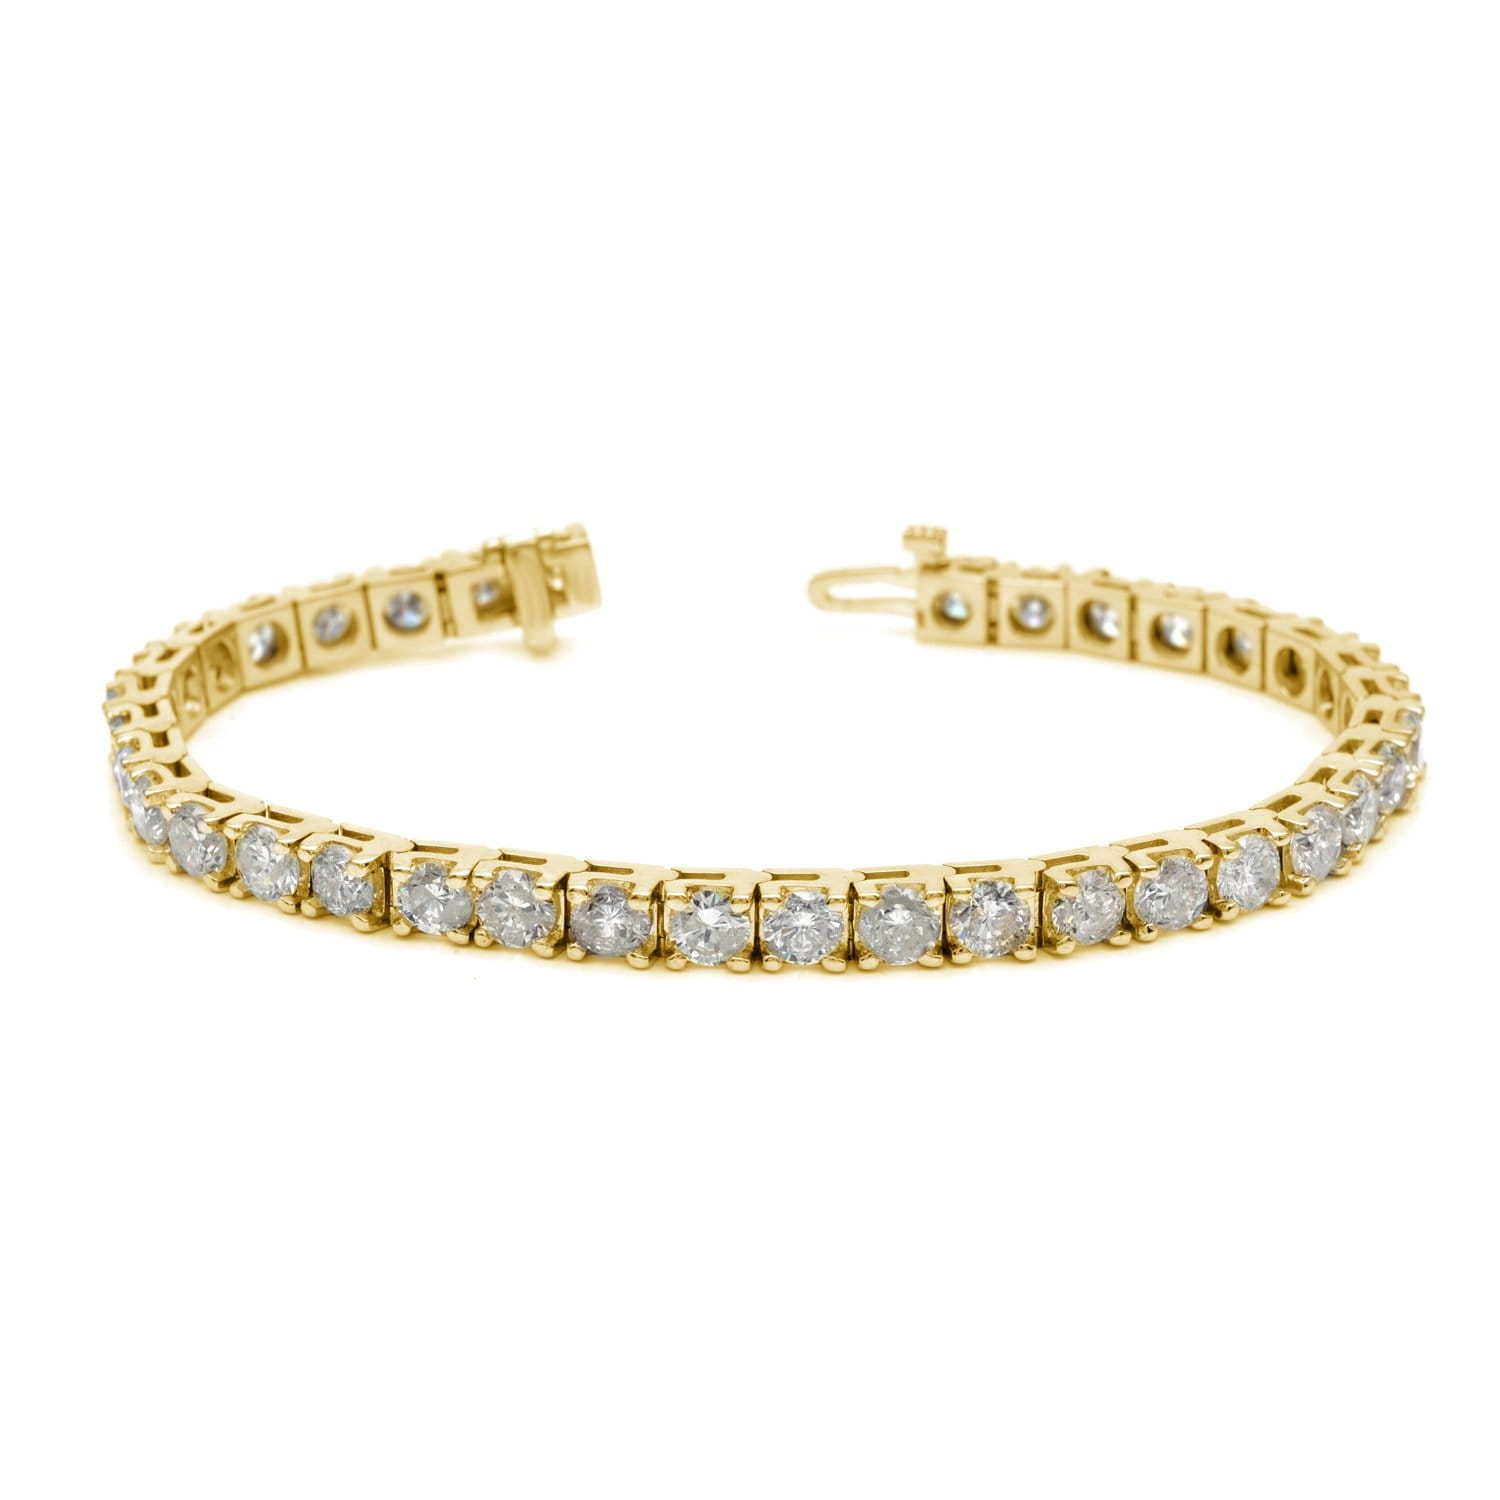 Auriya  14k White or Yellow Gold 12ct TDW Diamond Tennis Bracelet